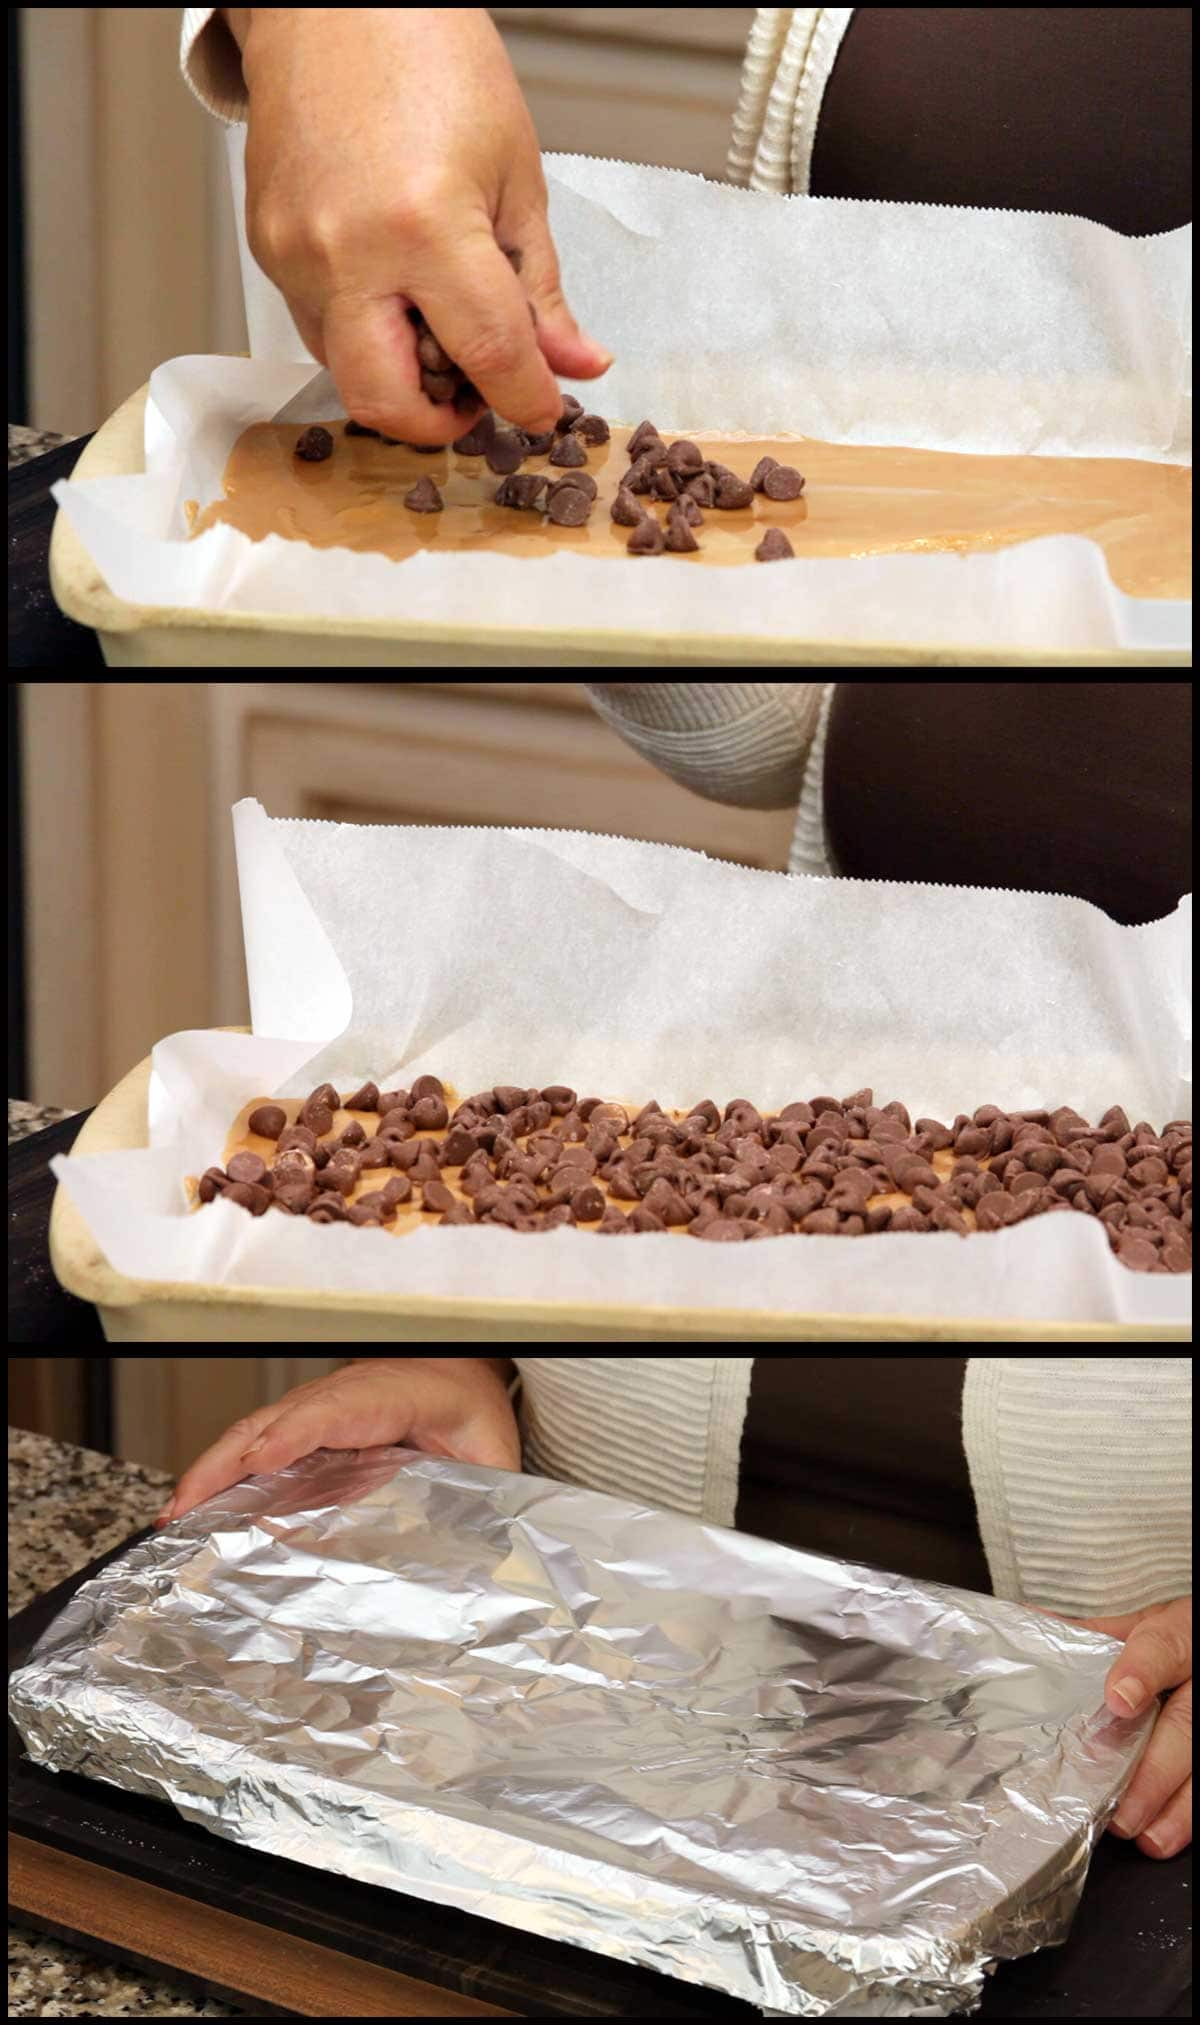 Adding the chocolate chips to the top of the toffee and covering with foil